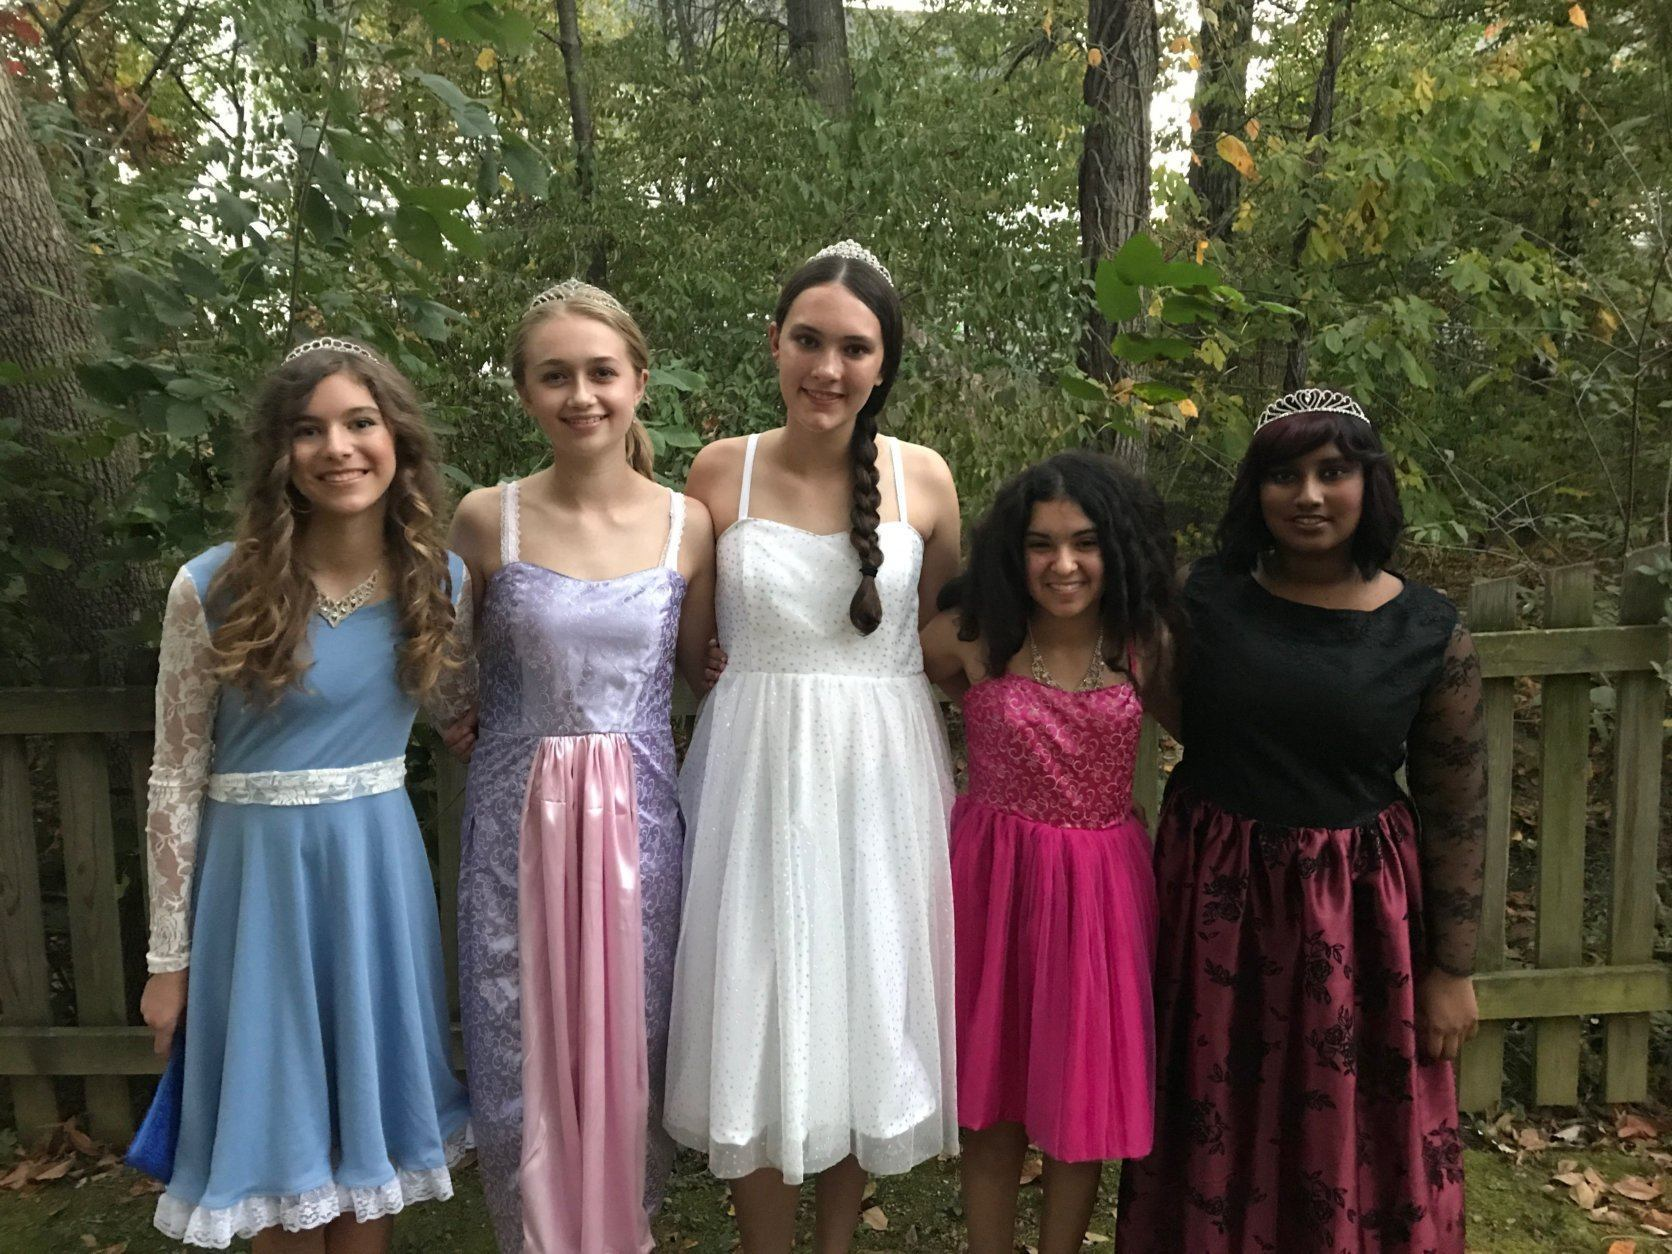 During Christina's sophomore year of high school, she made these dresses for herself and four friends. Each dress was based on a princess theme and tailored to match each girl's personality. (Courtesy Nicole Mellott)